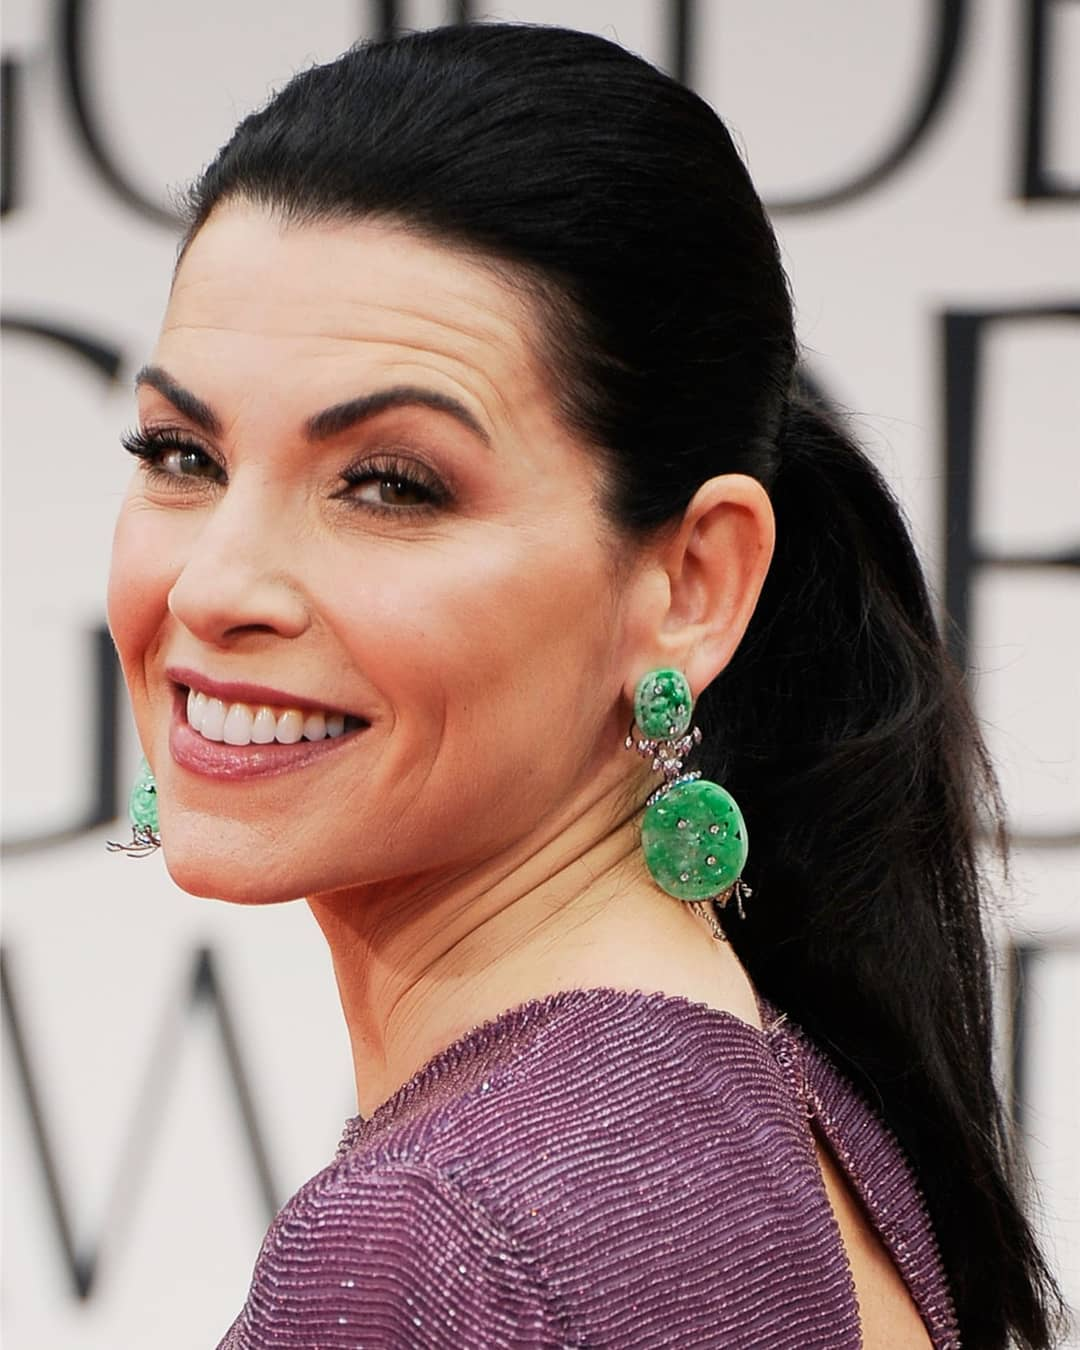 Julianna Margulies Beautifull Pics